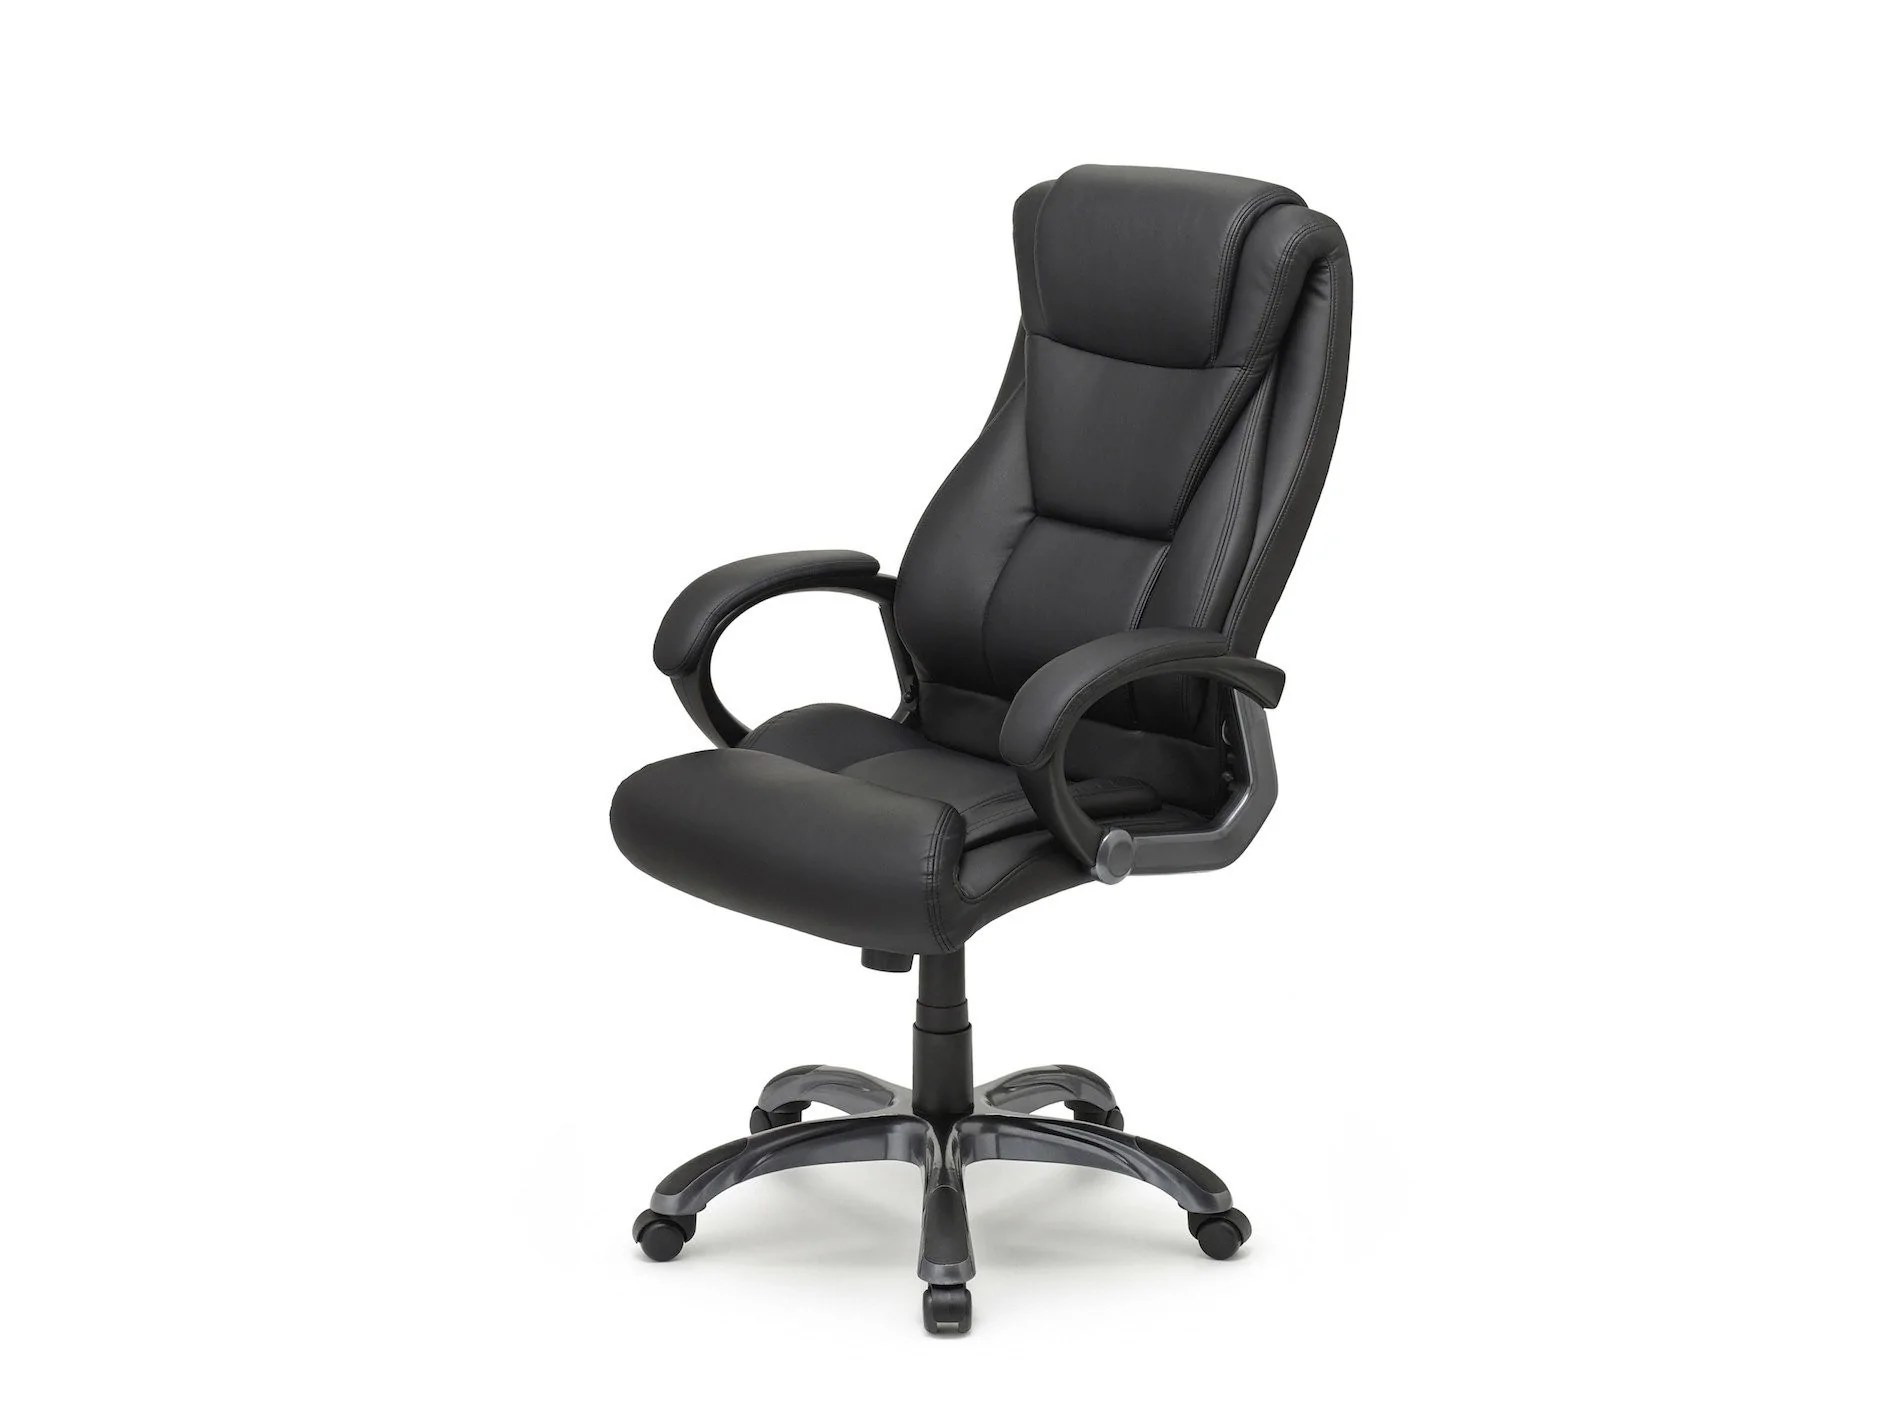 Back Support Chair Executive Lumbar Support Office Chair Crossford